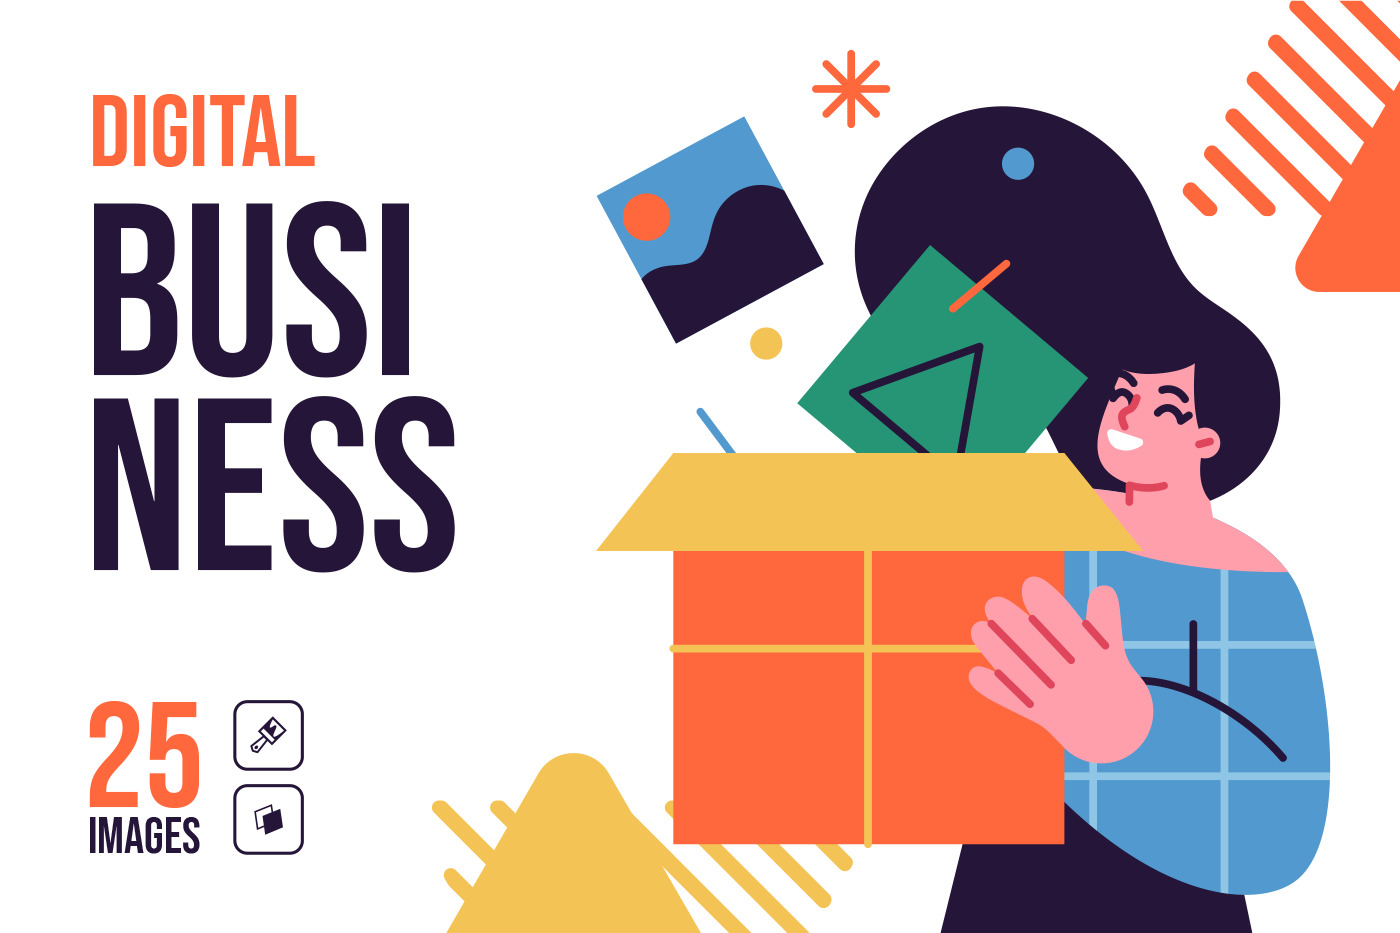 Digital Business. Concepts for productivity apps and task management systems